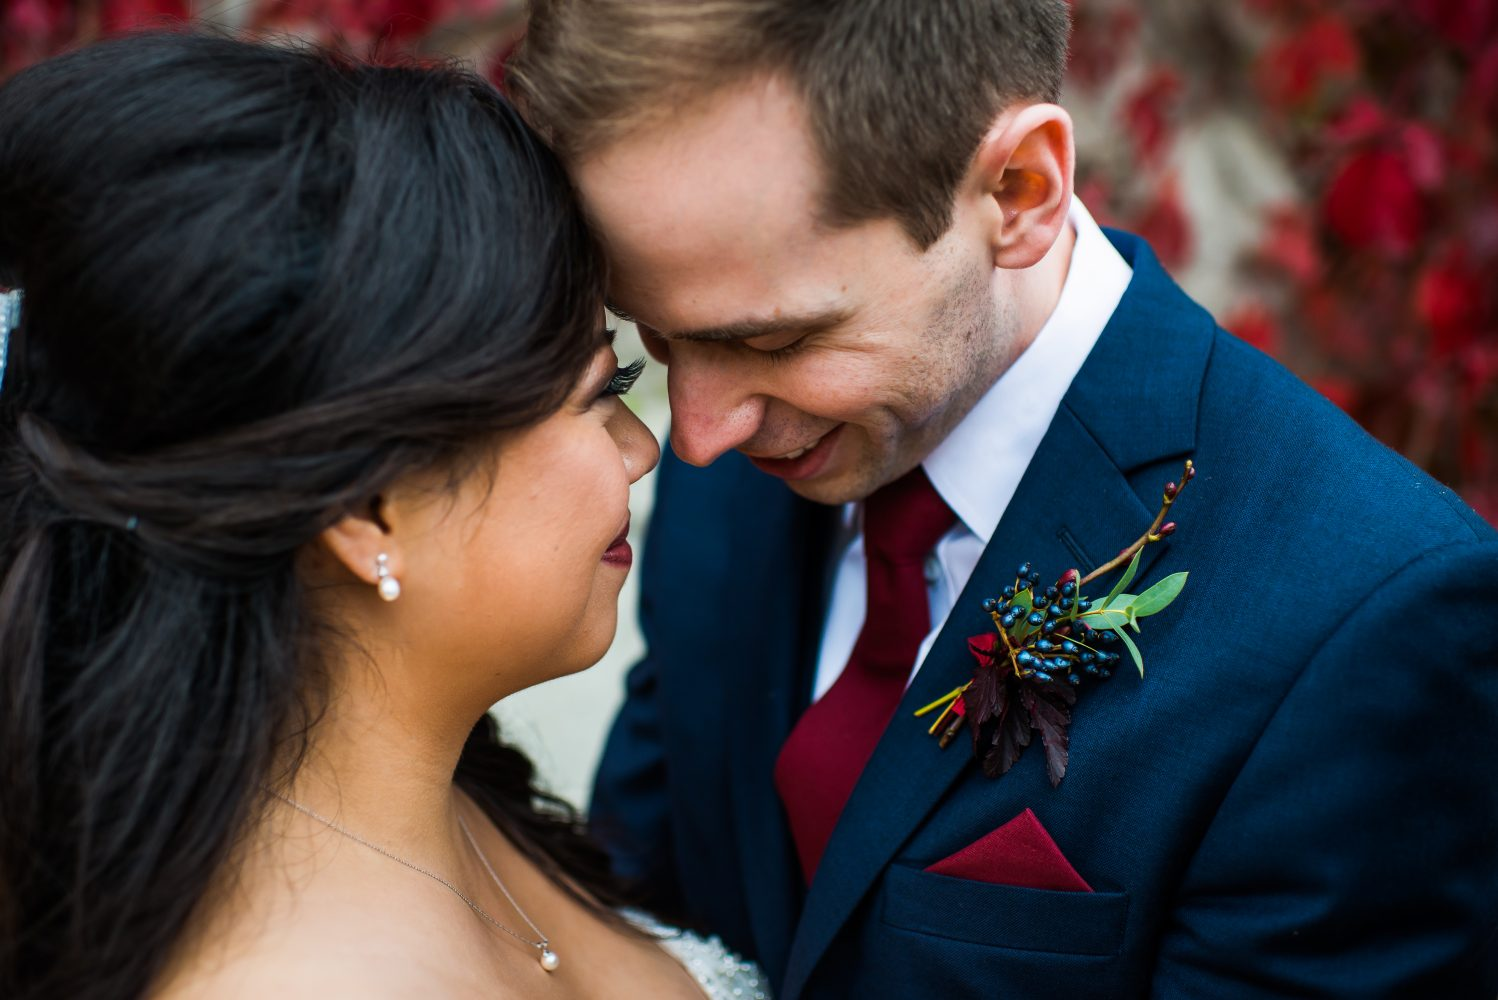 Burdandy and Navy fall wedding at the old timers cabin in Edmonton Alberta | 3Haus Photographics